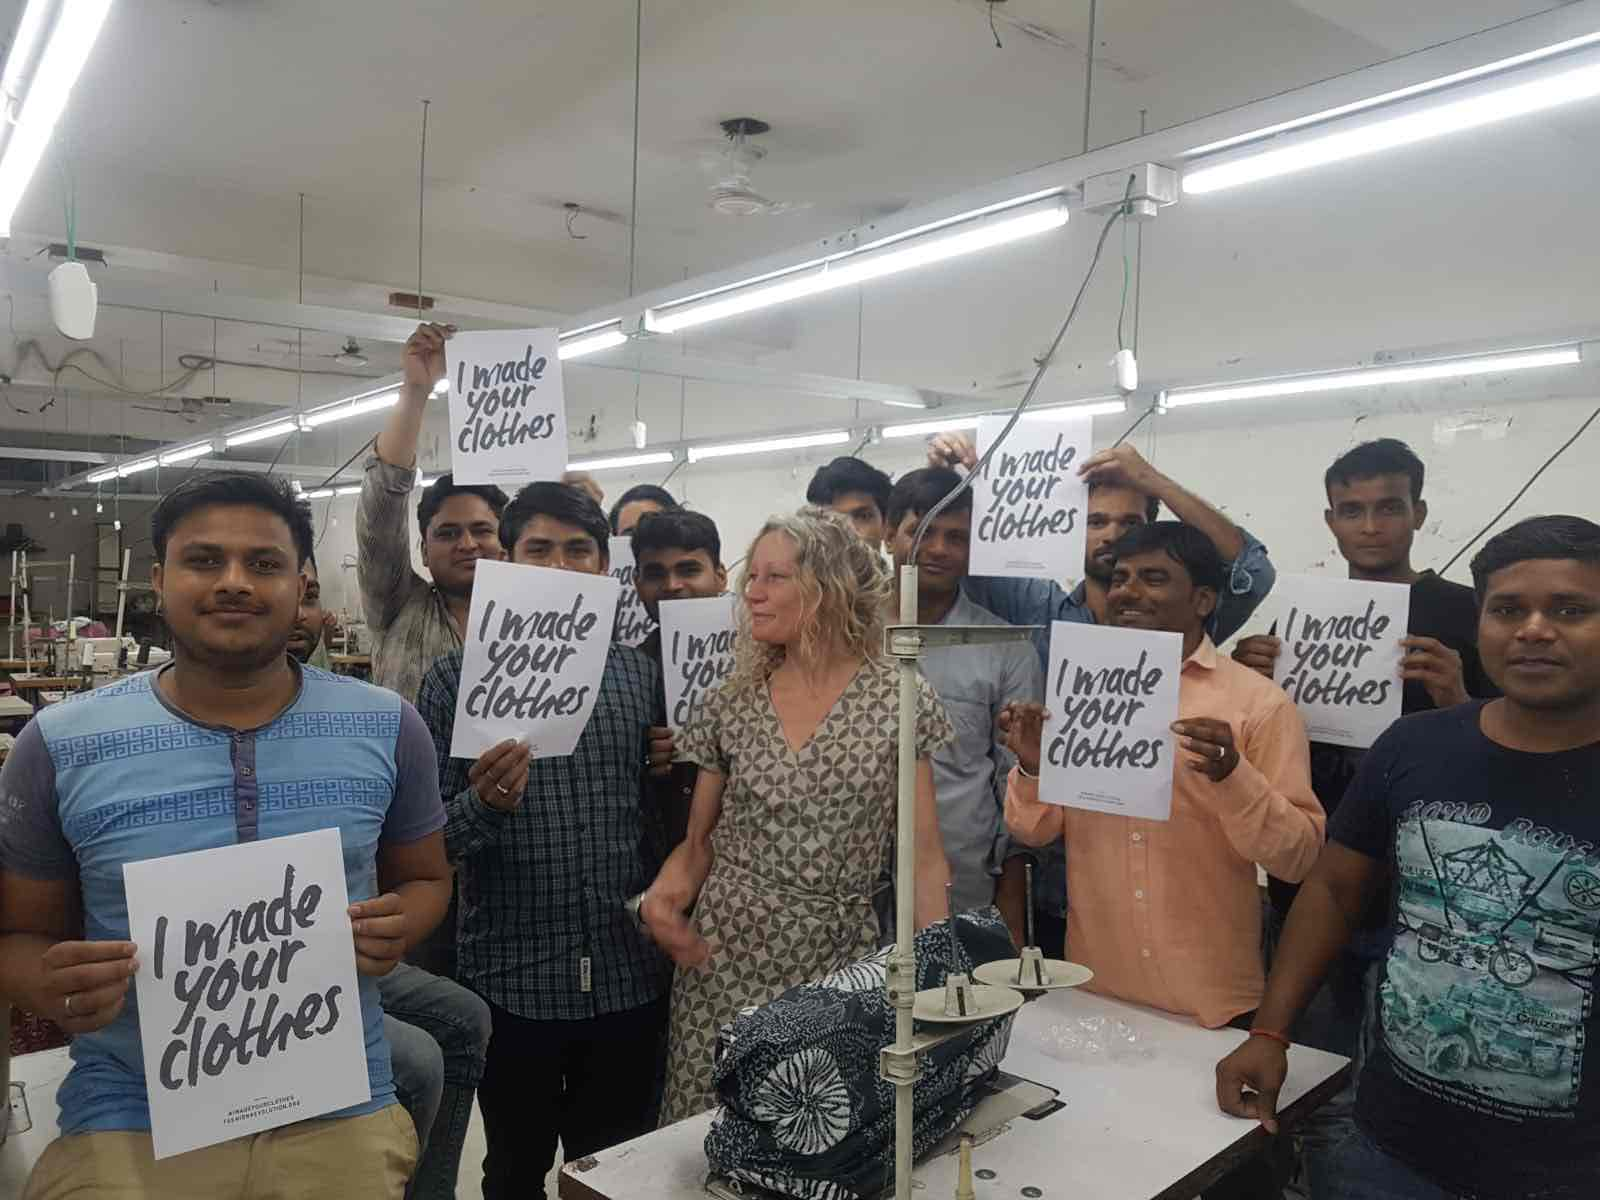 Fashion Revolution and Ethical Clothing: #WhoMadeMyClothes?